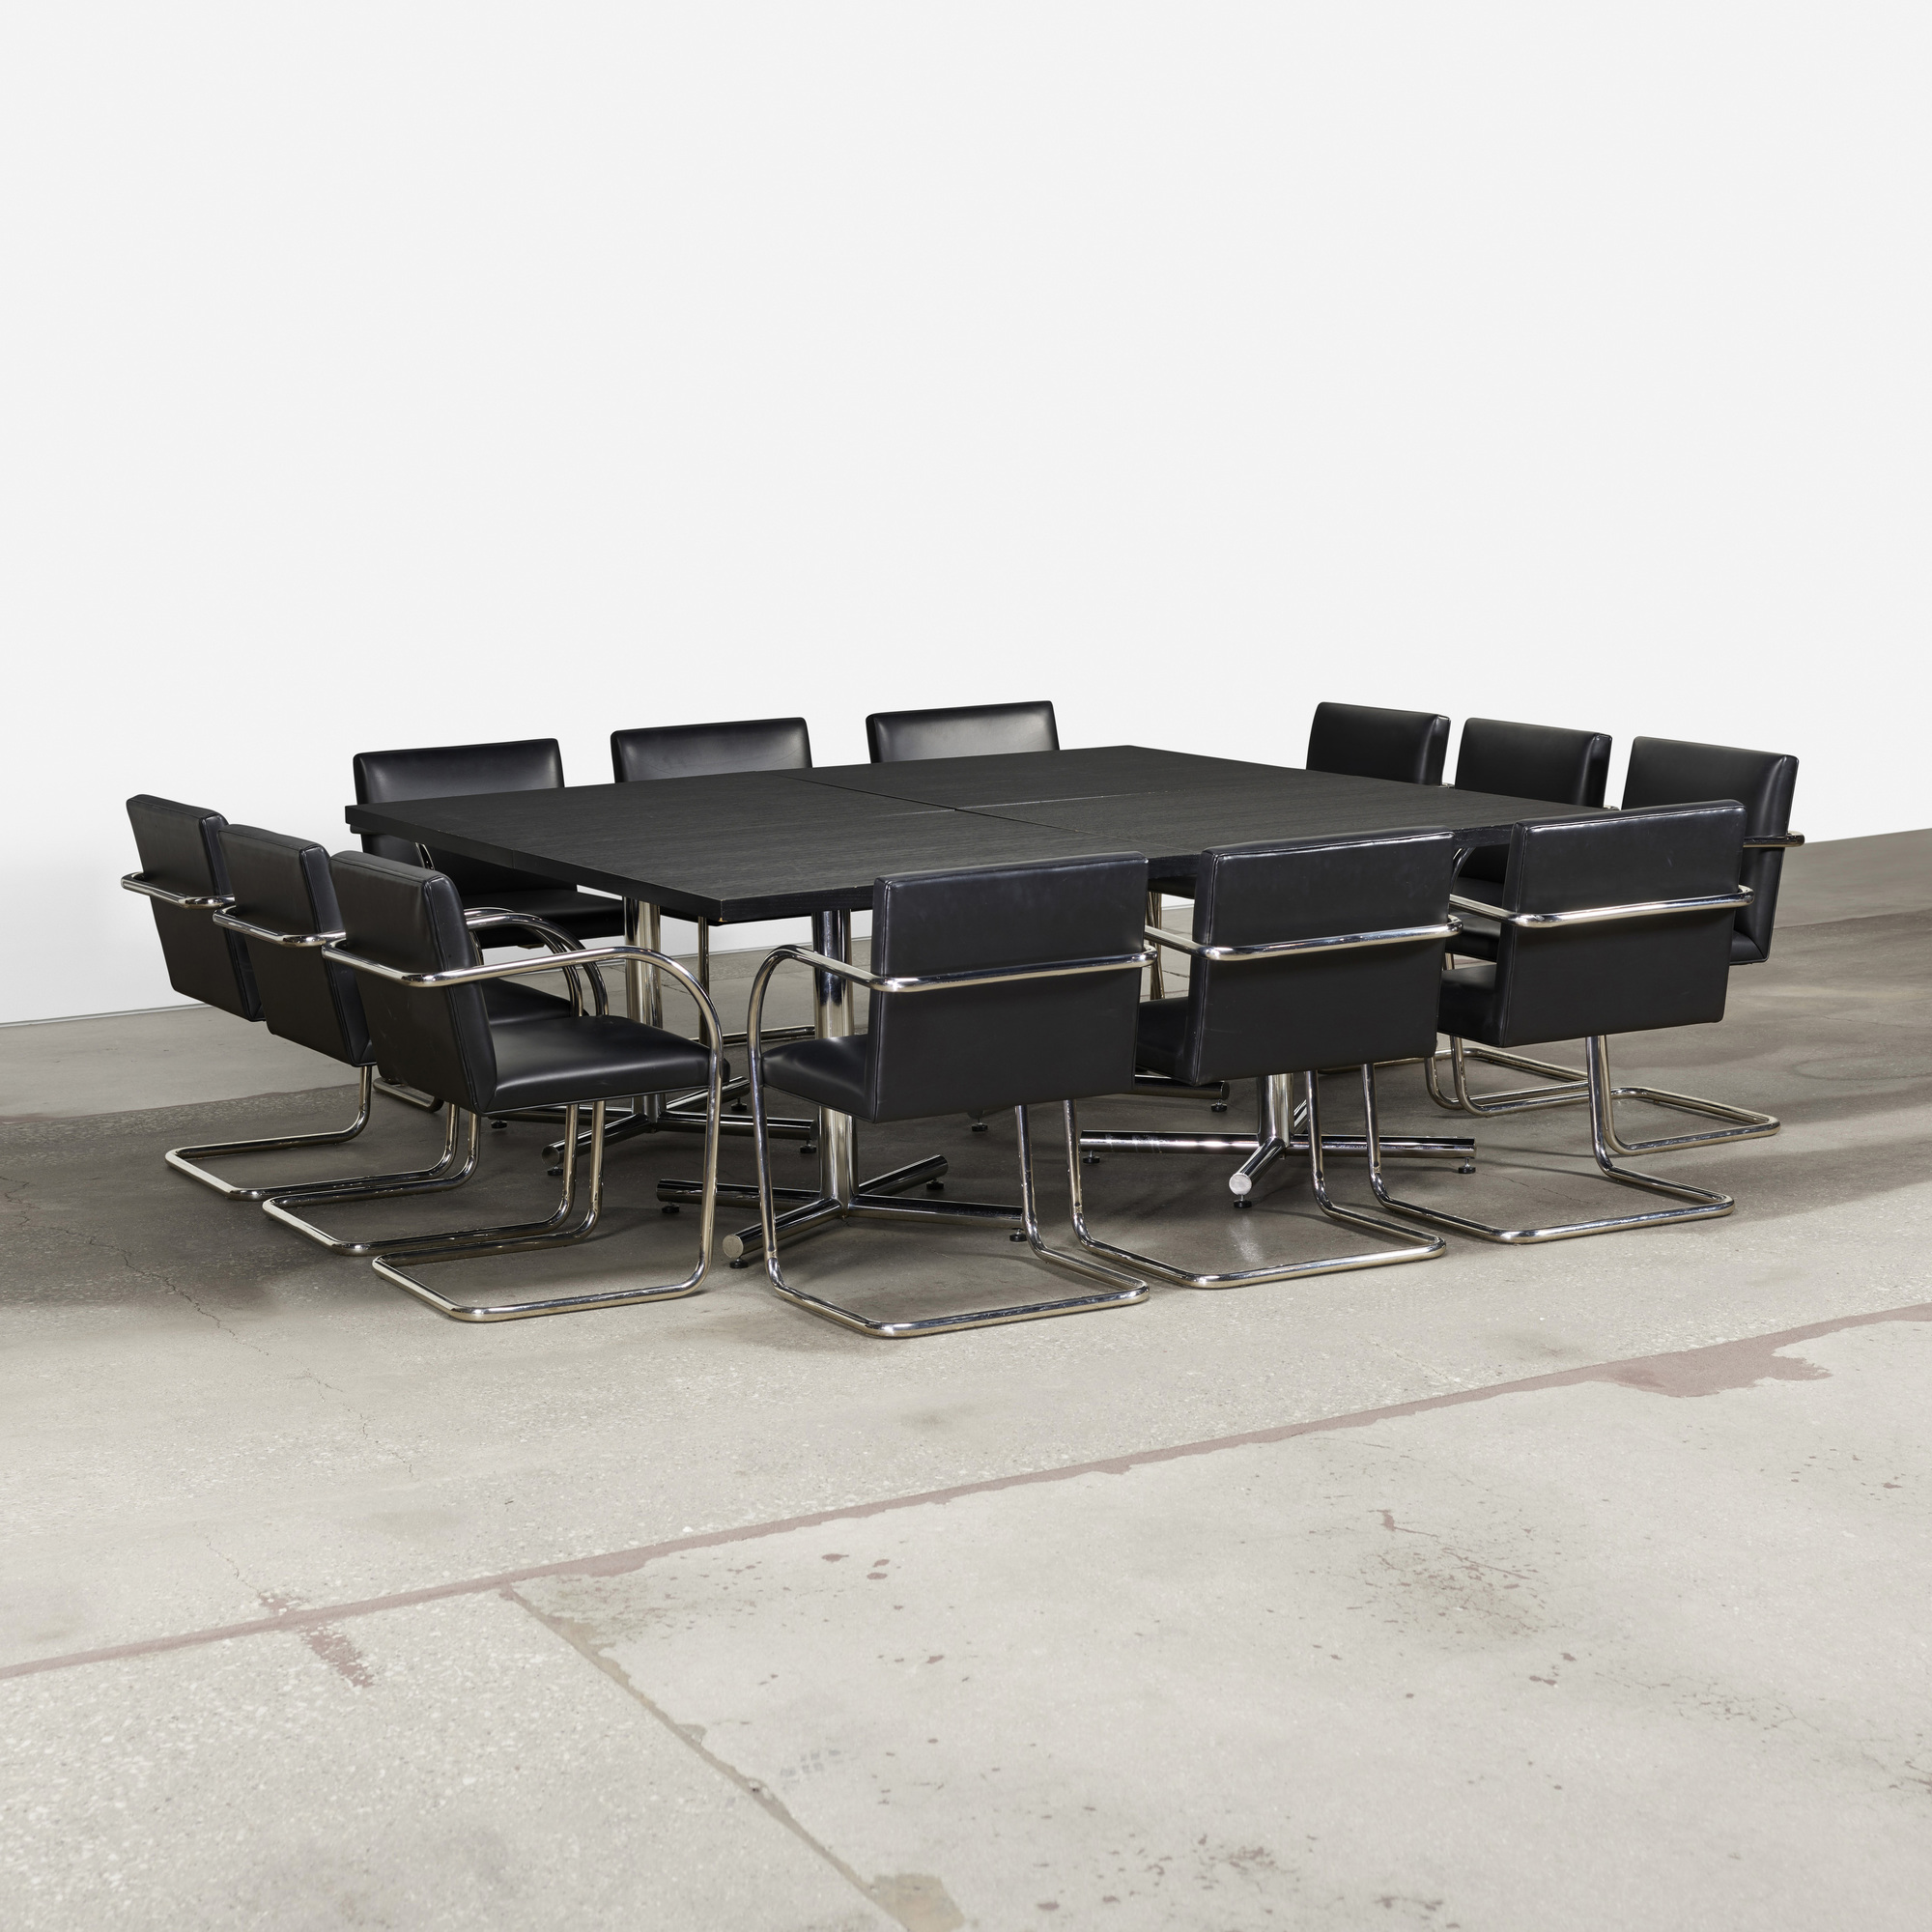 238: Ludwig Mies van der Rohe / set of twelve Brno chairs from The Arts Club of Chicago (3 of 4)